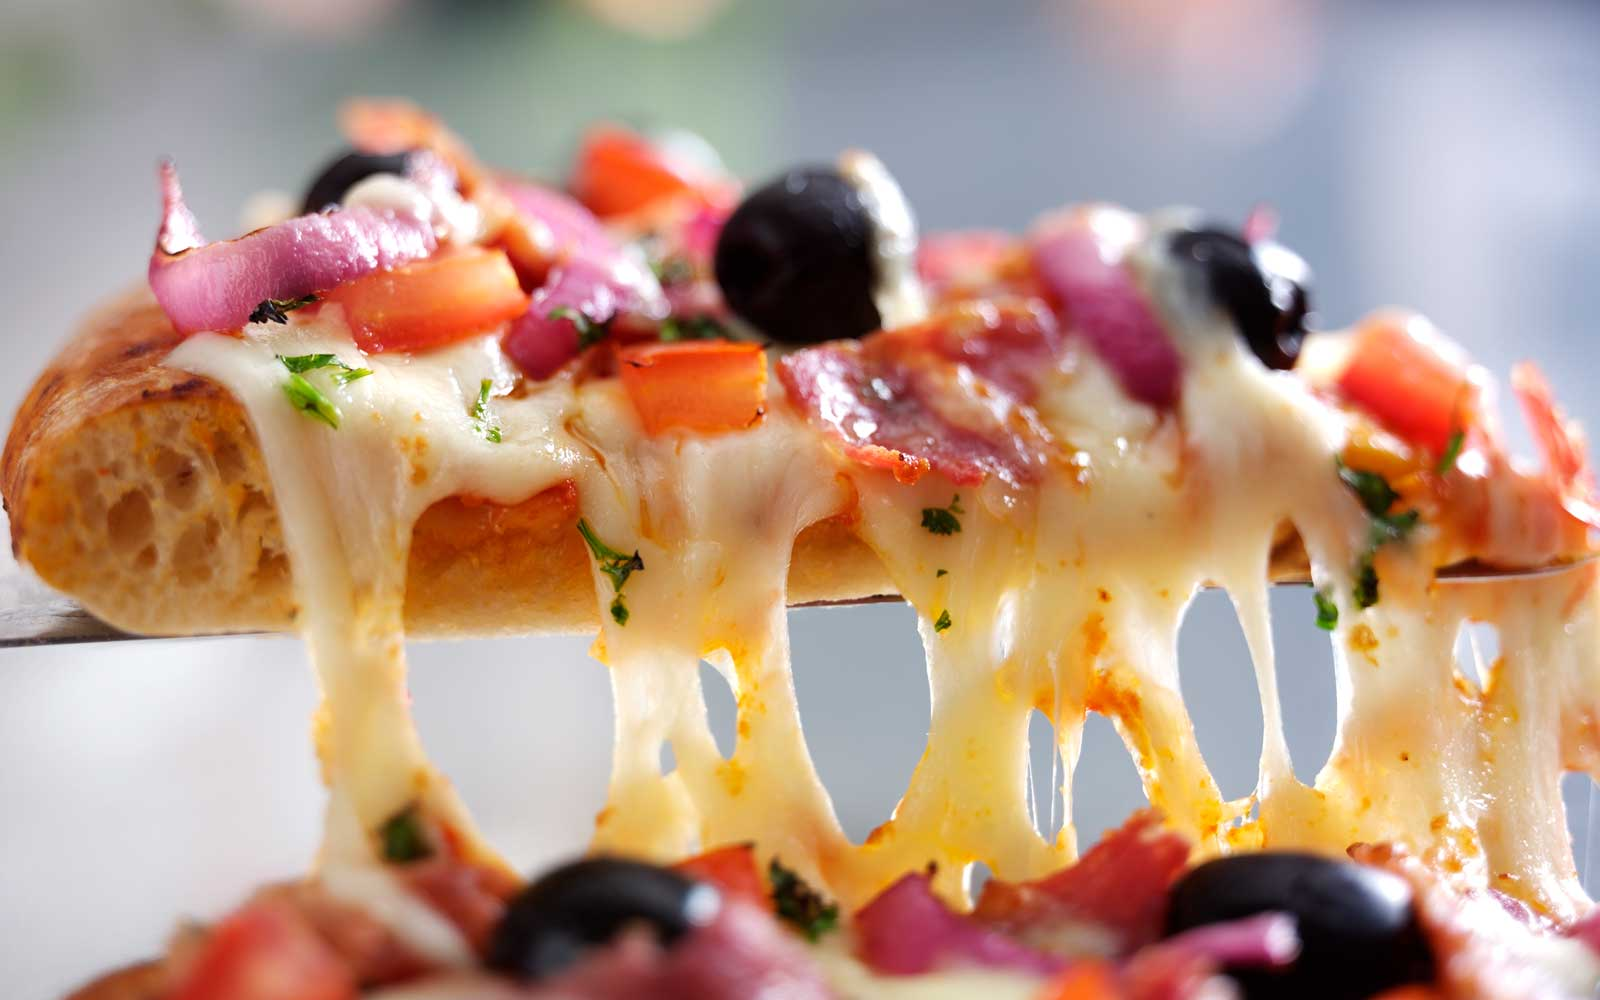 You Could Get Paid $1,000 a Day to Make and Taste Pizzas From the Comfort of Your Own Home